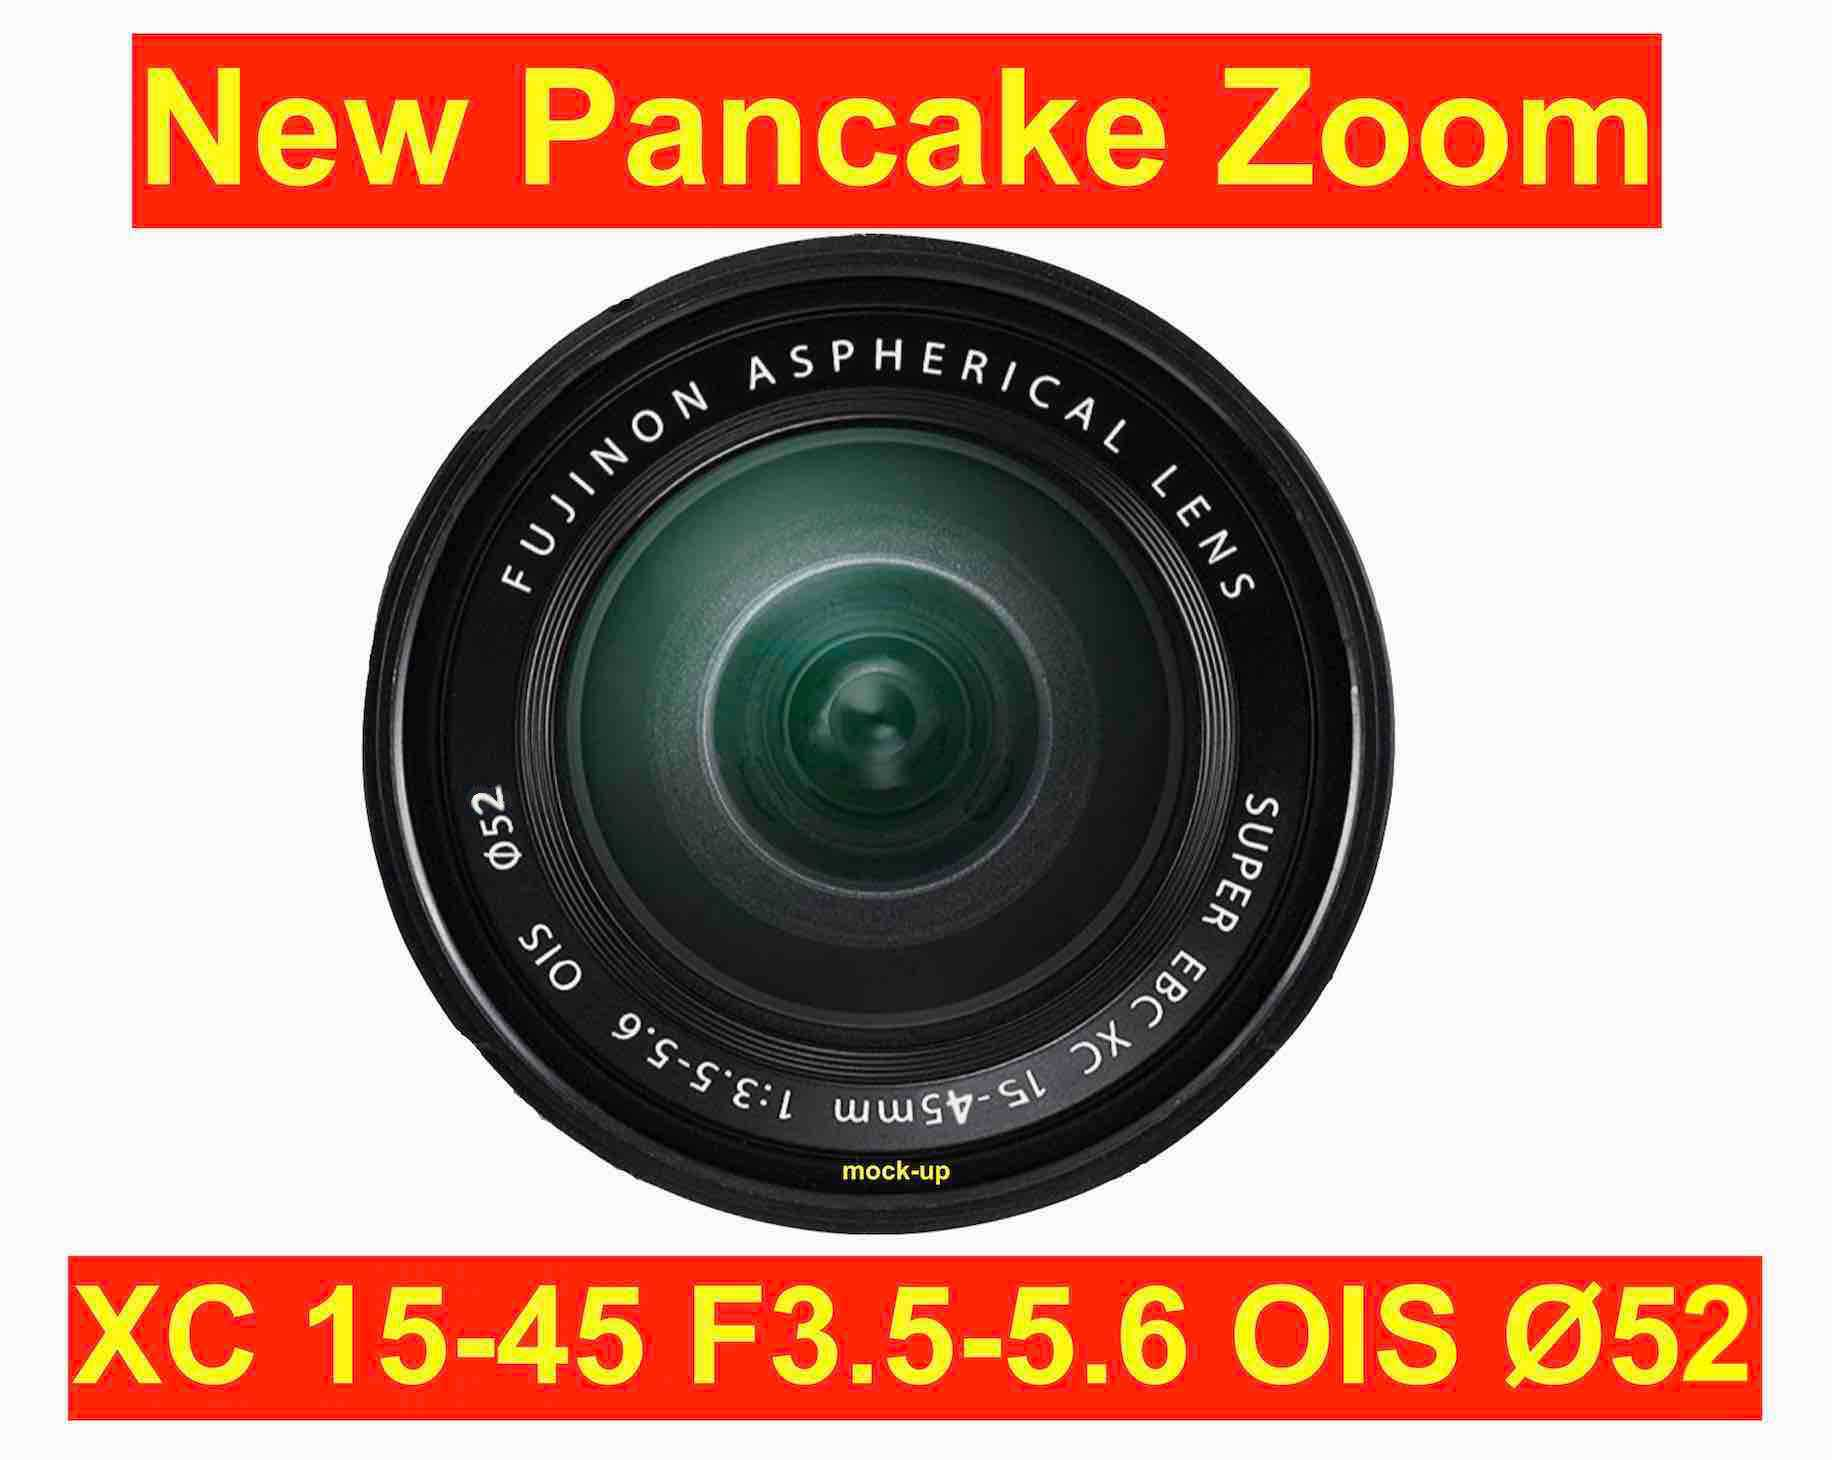 coming soon new fujinon xc 15 45mm f3 5 5 6 ois pancake. Black Bedroom Furniture Sets. Home Design Ideas